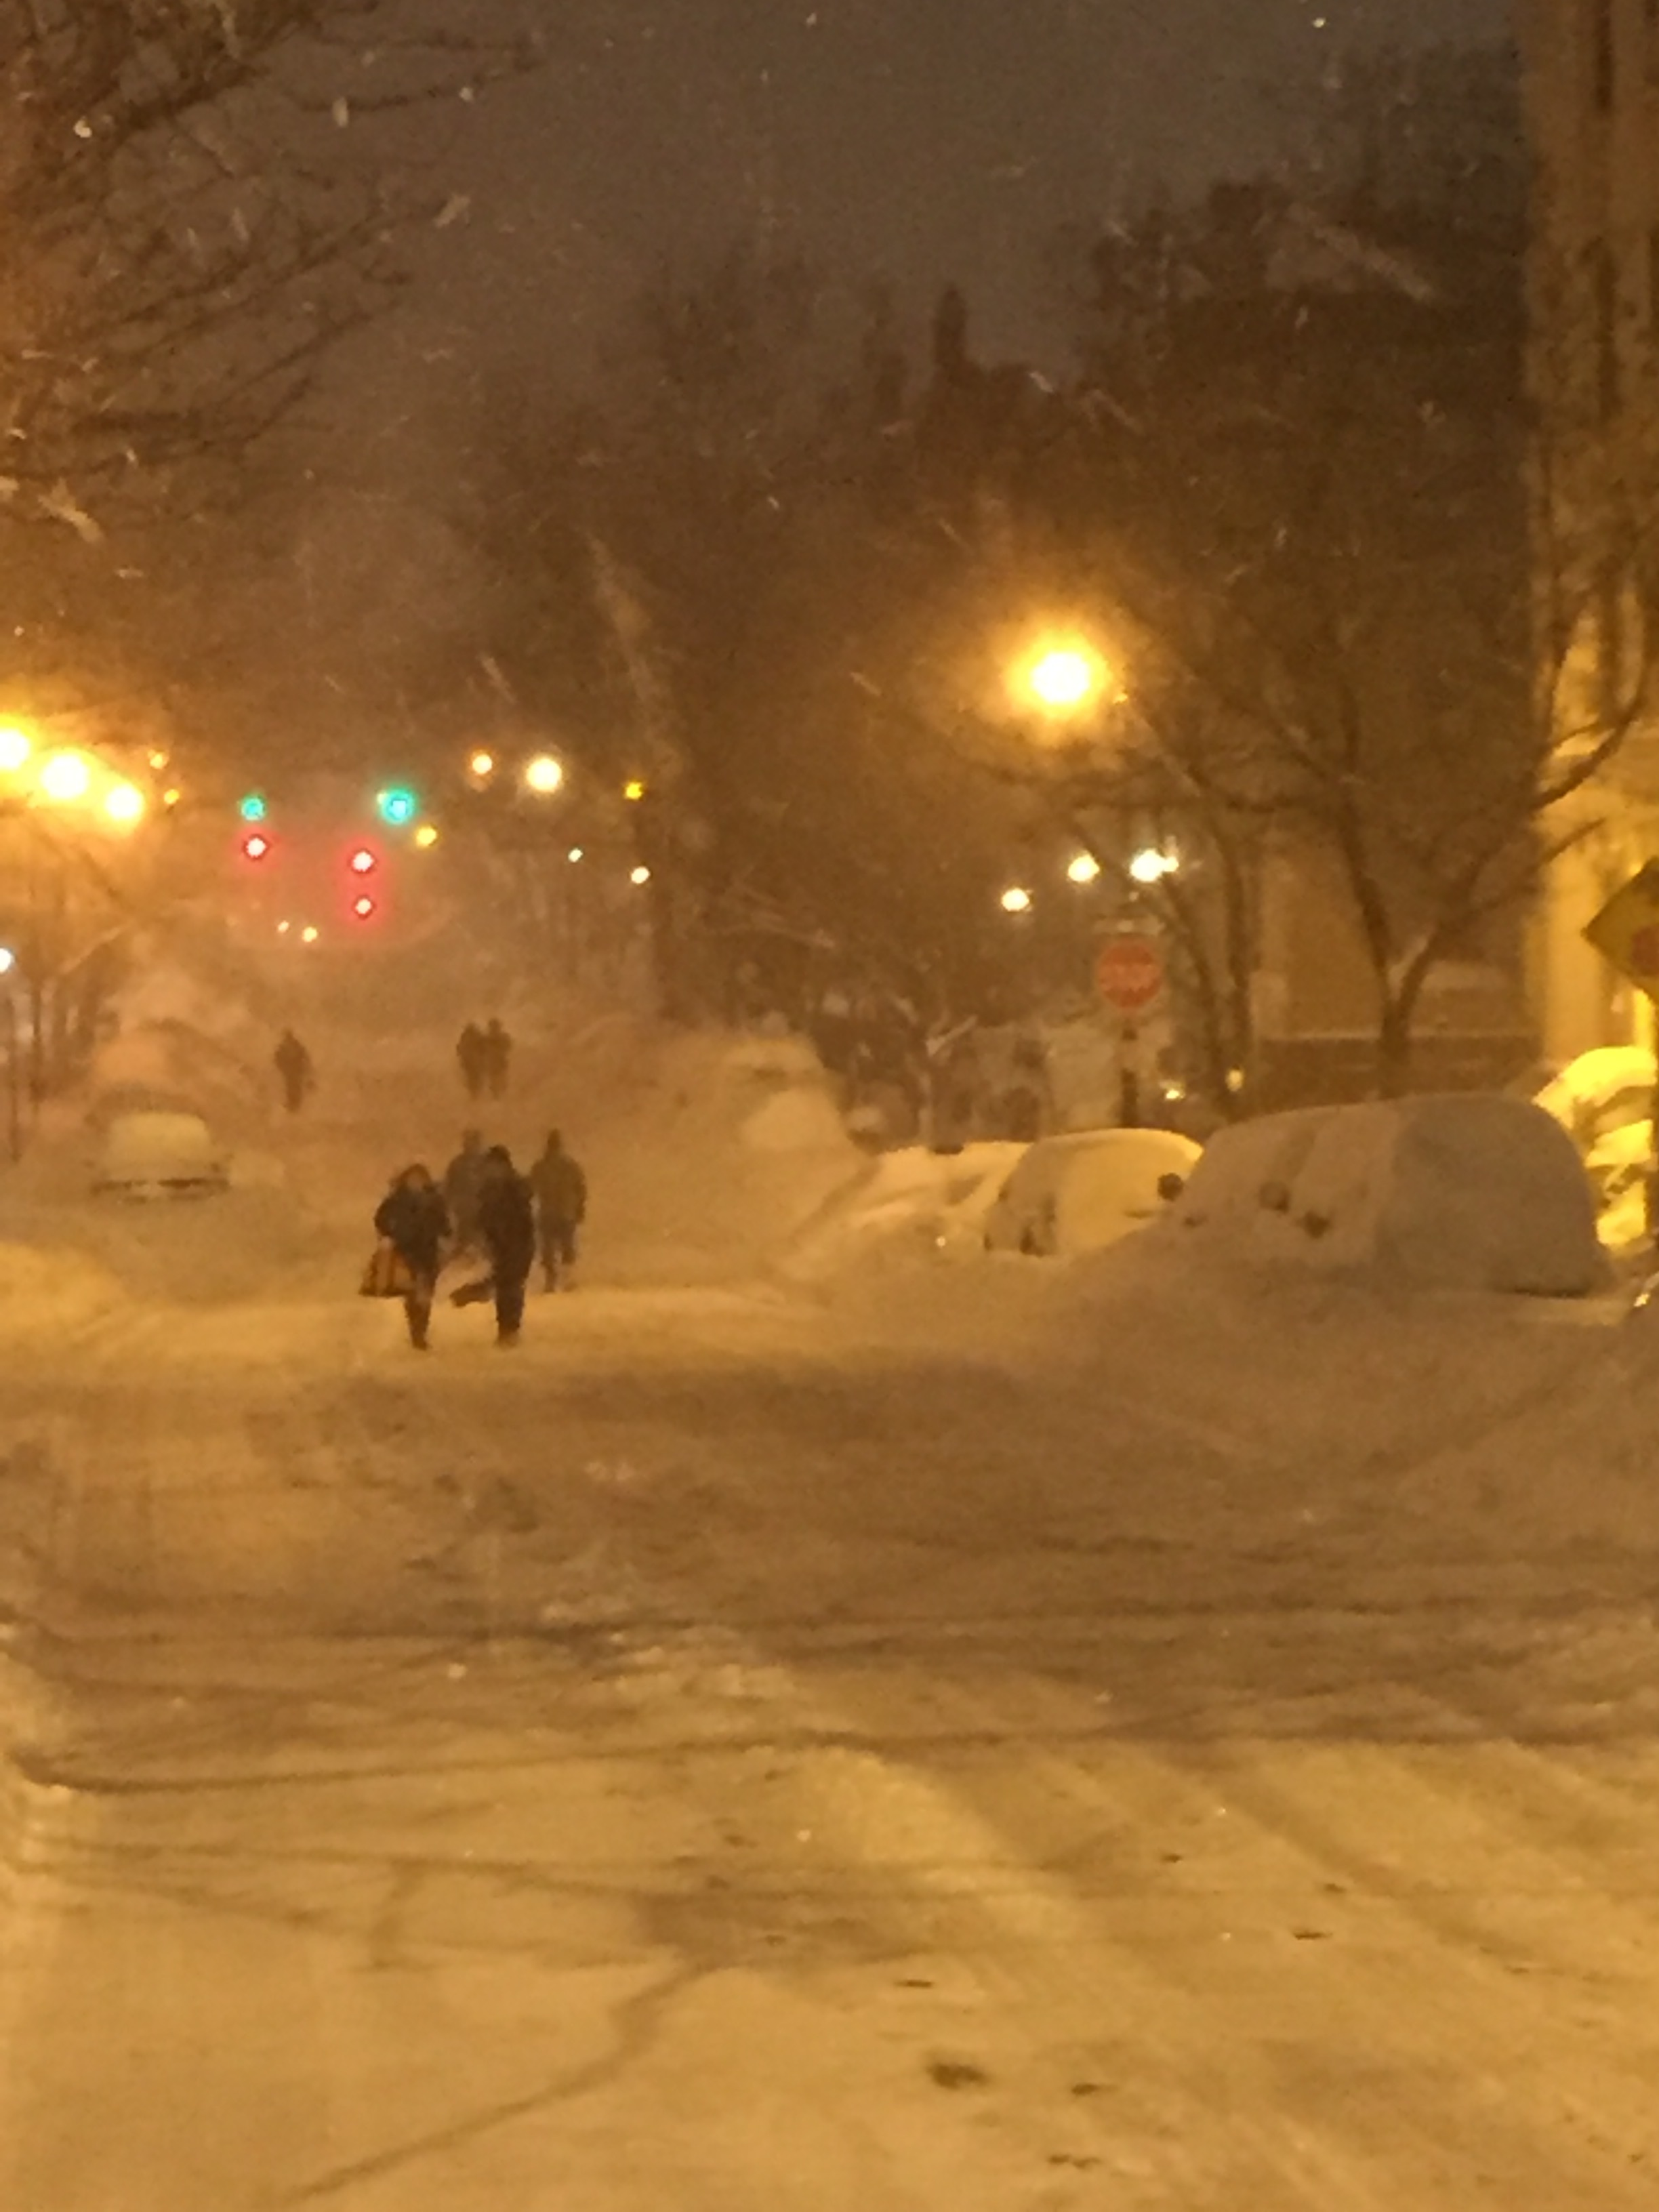 Evening of Saturday, January 23, 2016. Convent Avenue looking north from 145th Street in Manhattan.